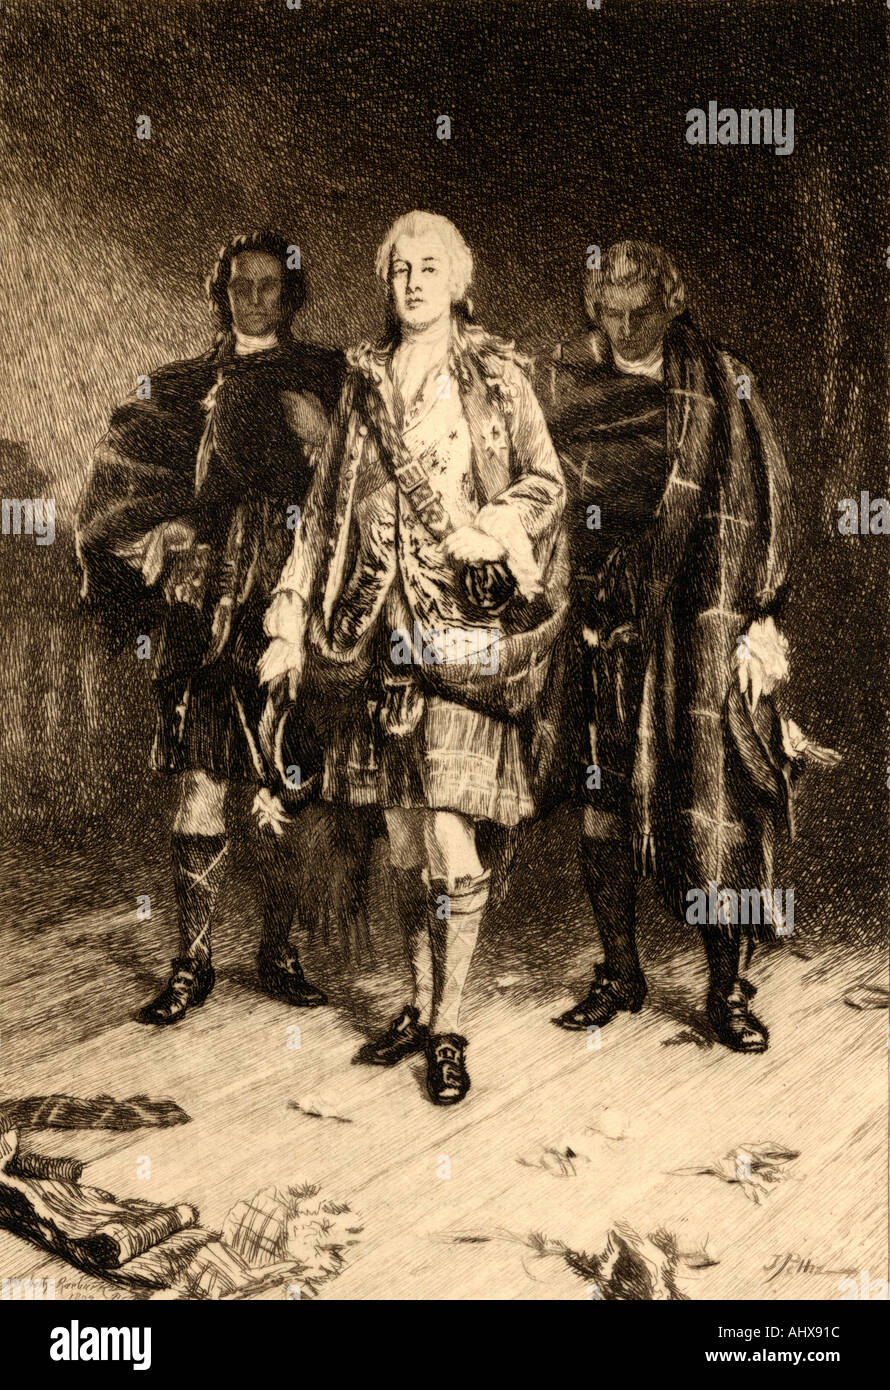 Charles Edward Stuart The Young Pretender Bonnie Prince Charlie 1720 1788 Claimant to the British throne - Stock Image